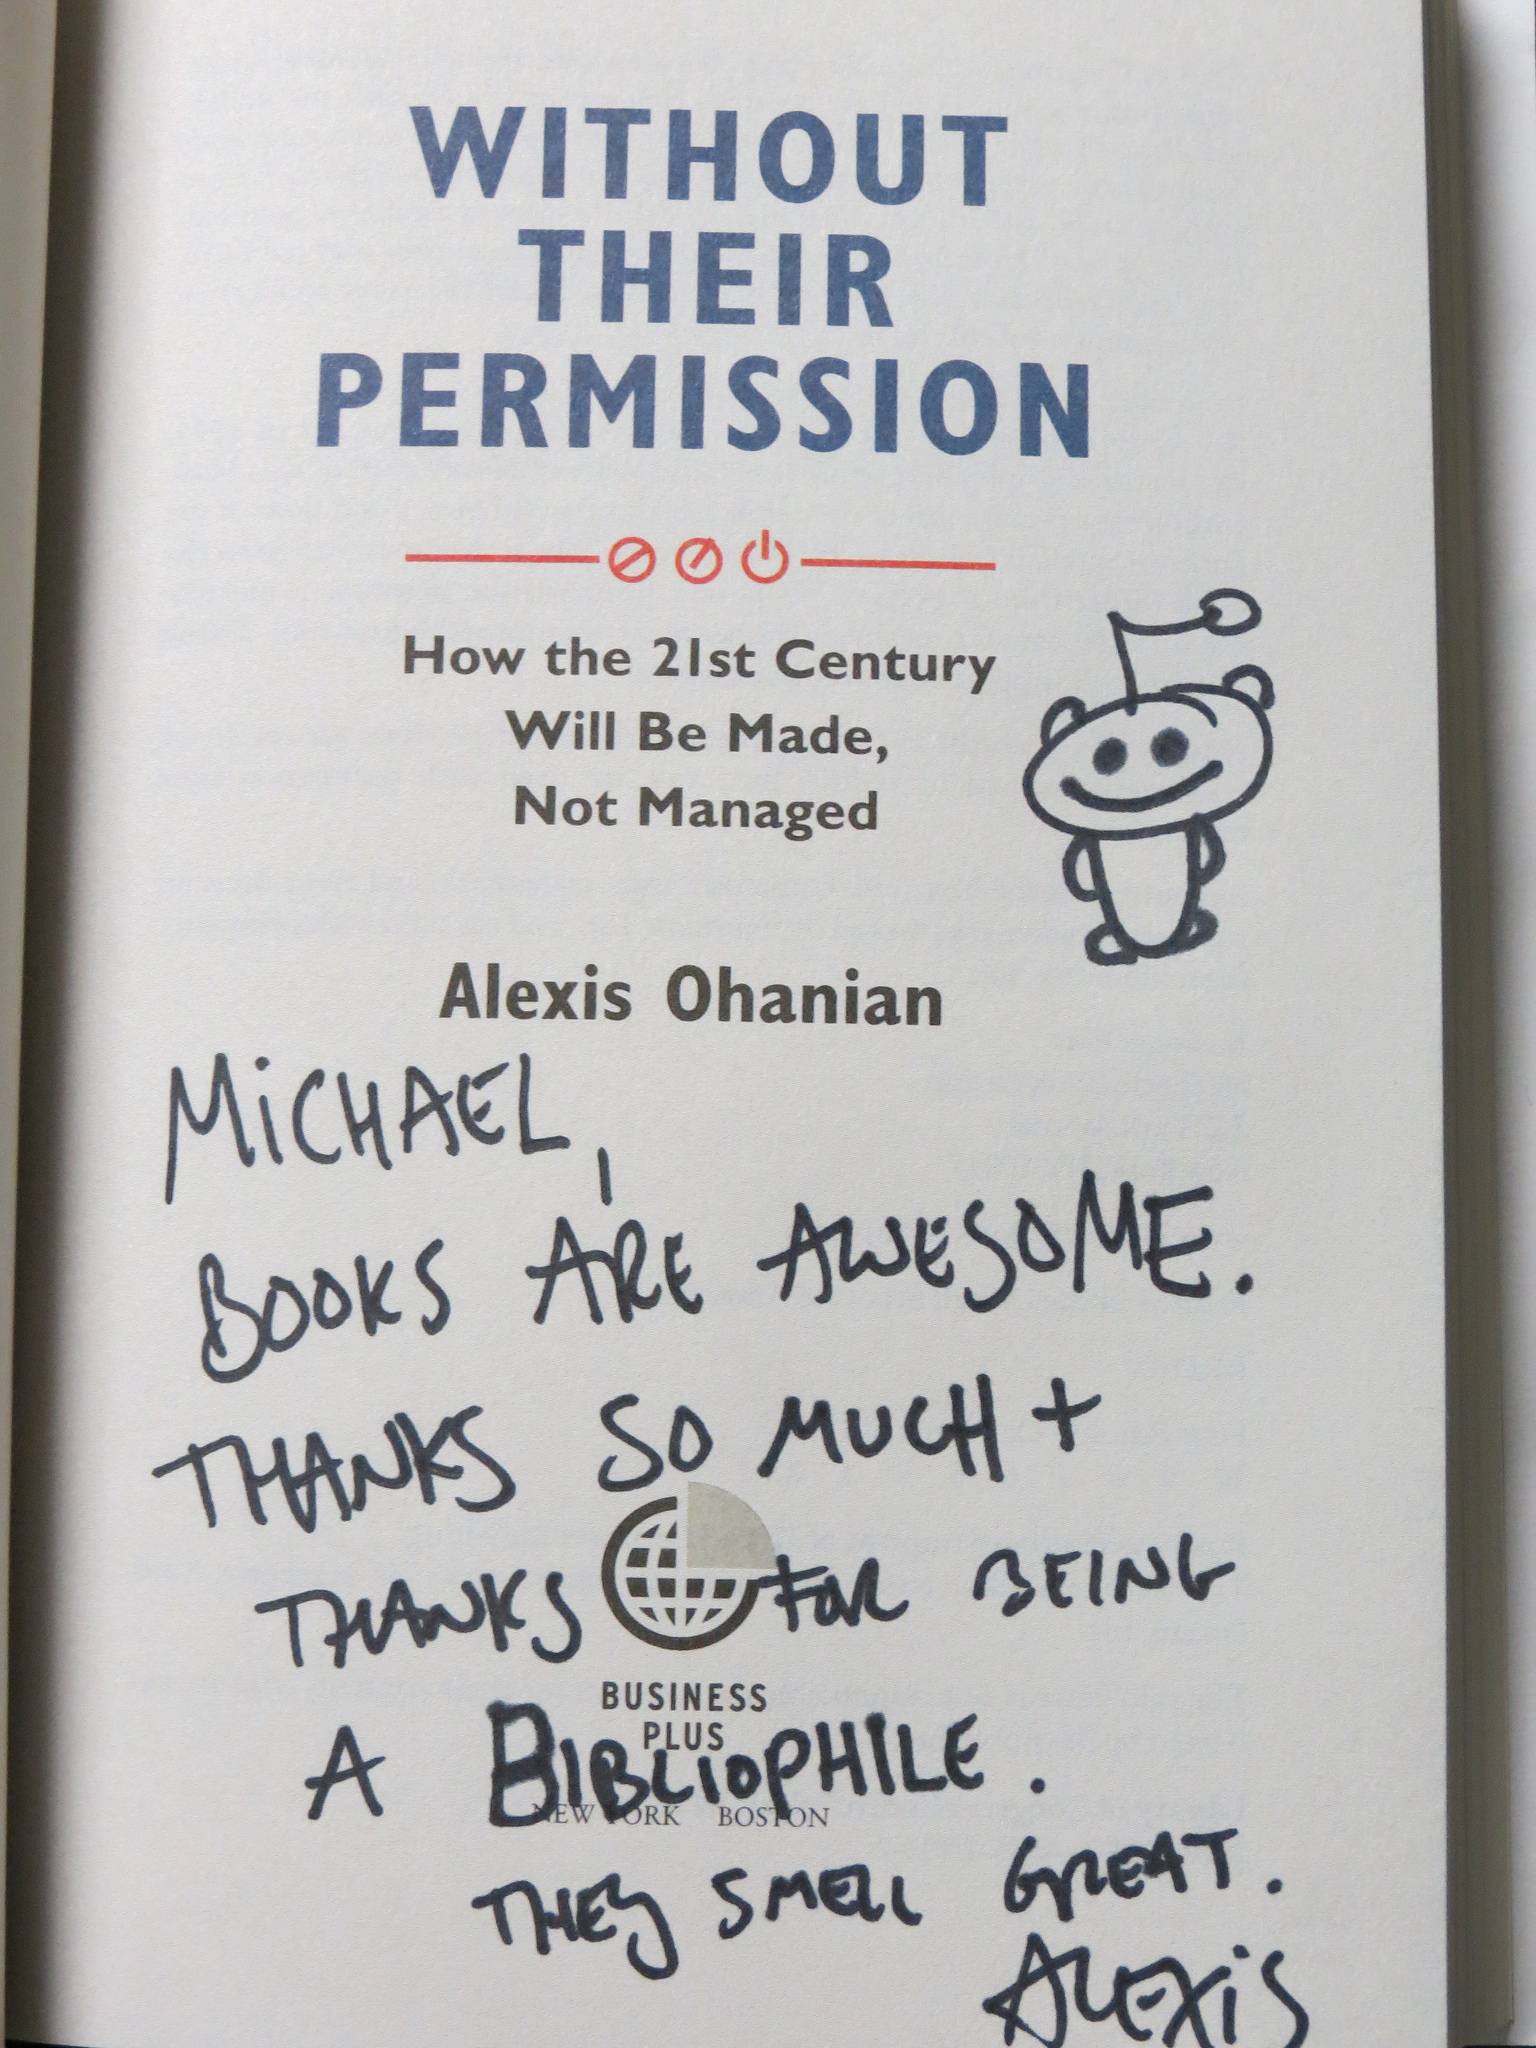 Throwback Thursday: Alexis Ohanian